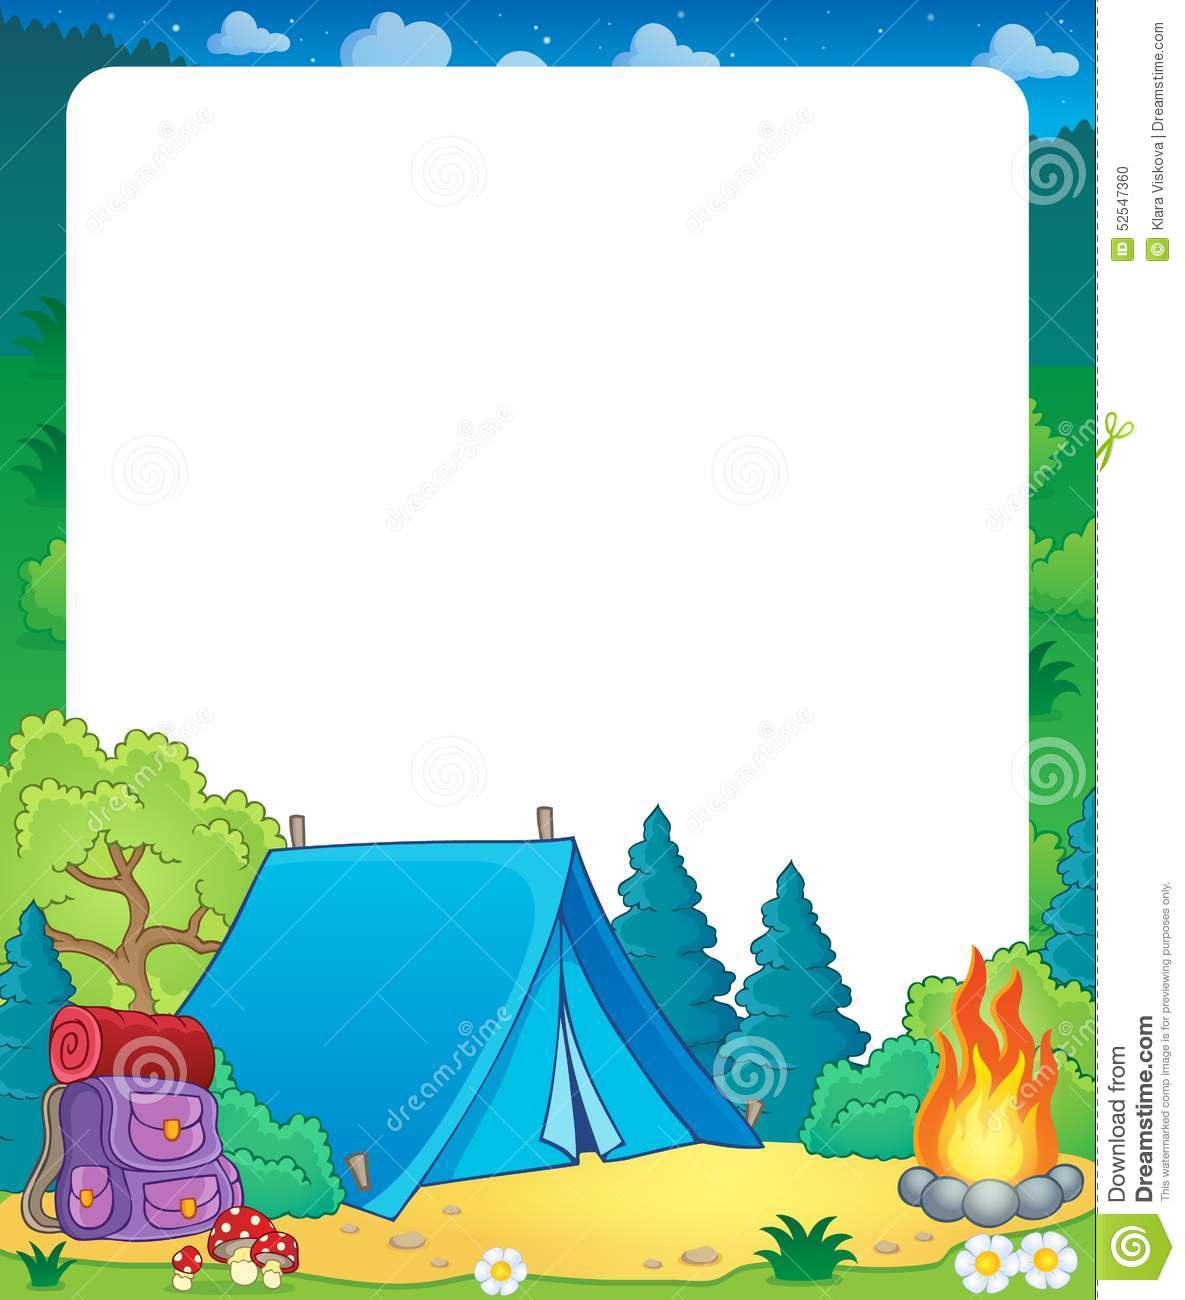 Summer Frame With Camp Site Theme Stock Vector - Image: 52547360